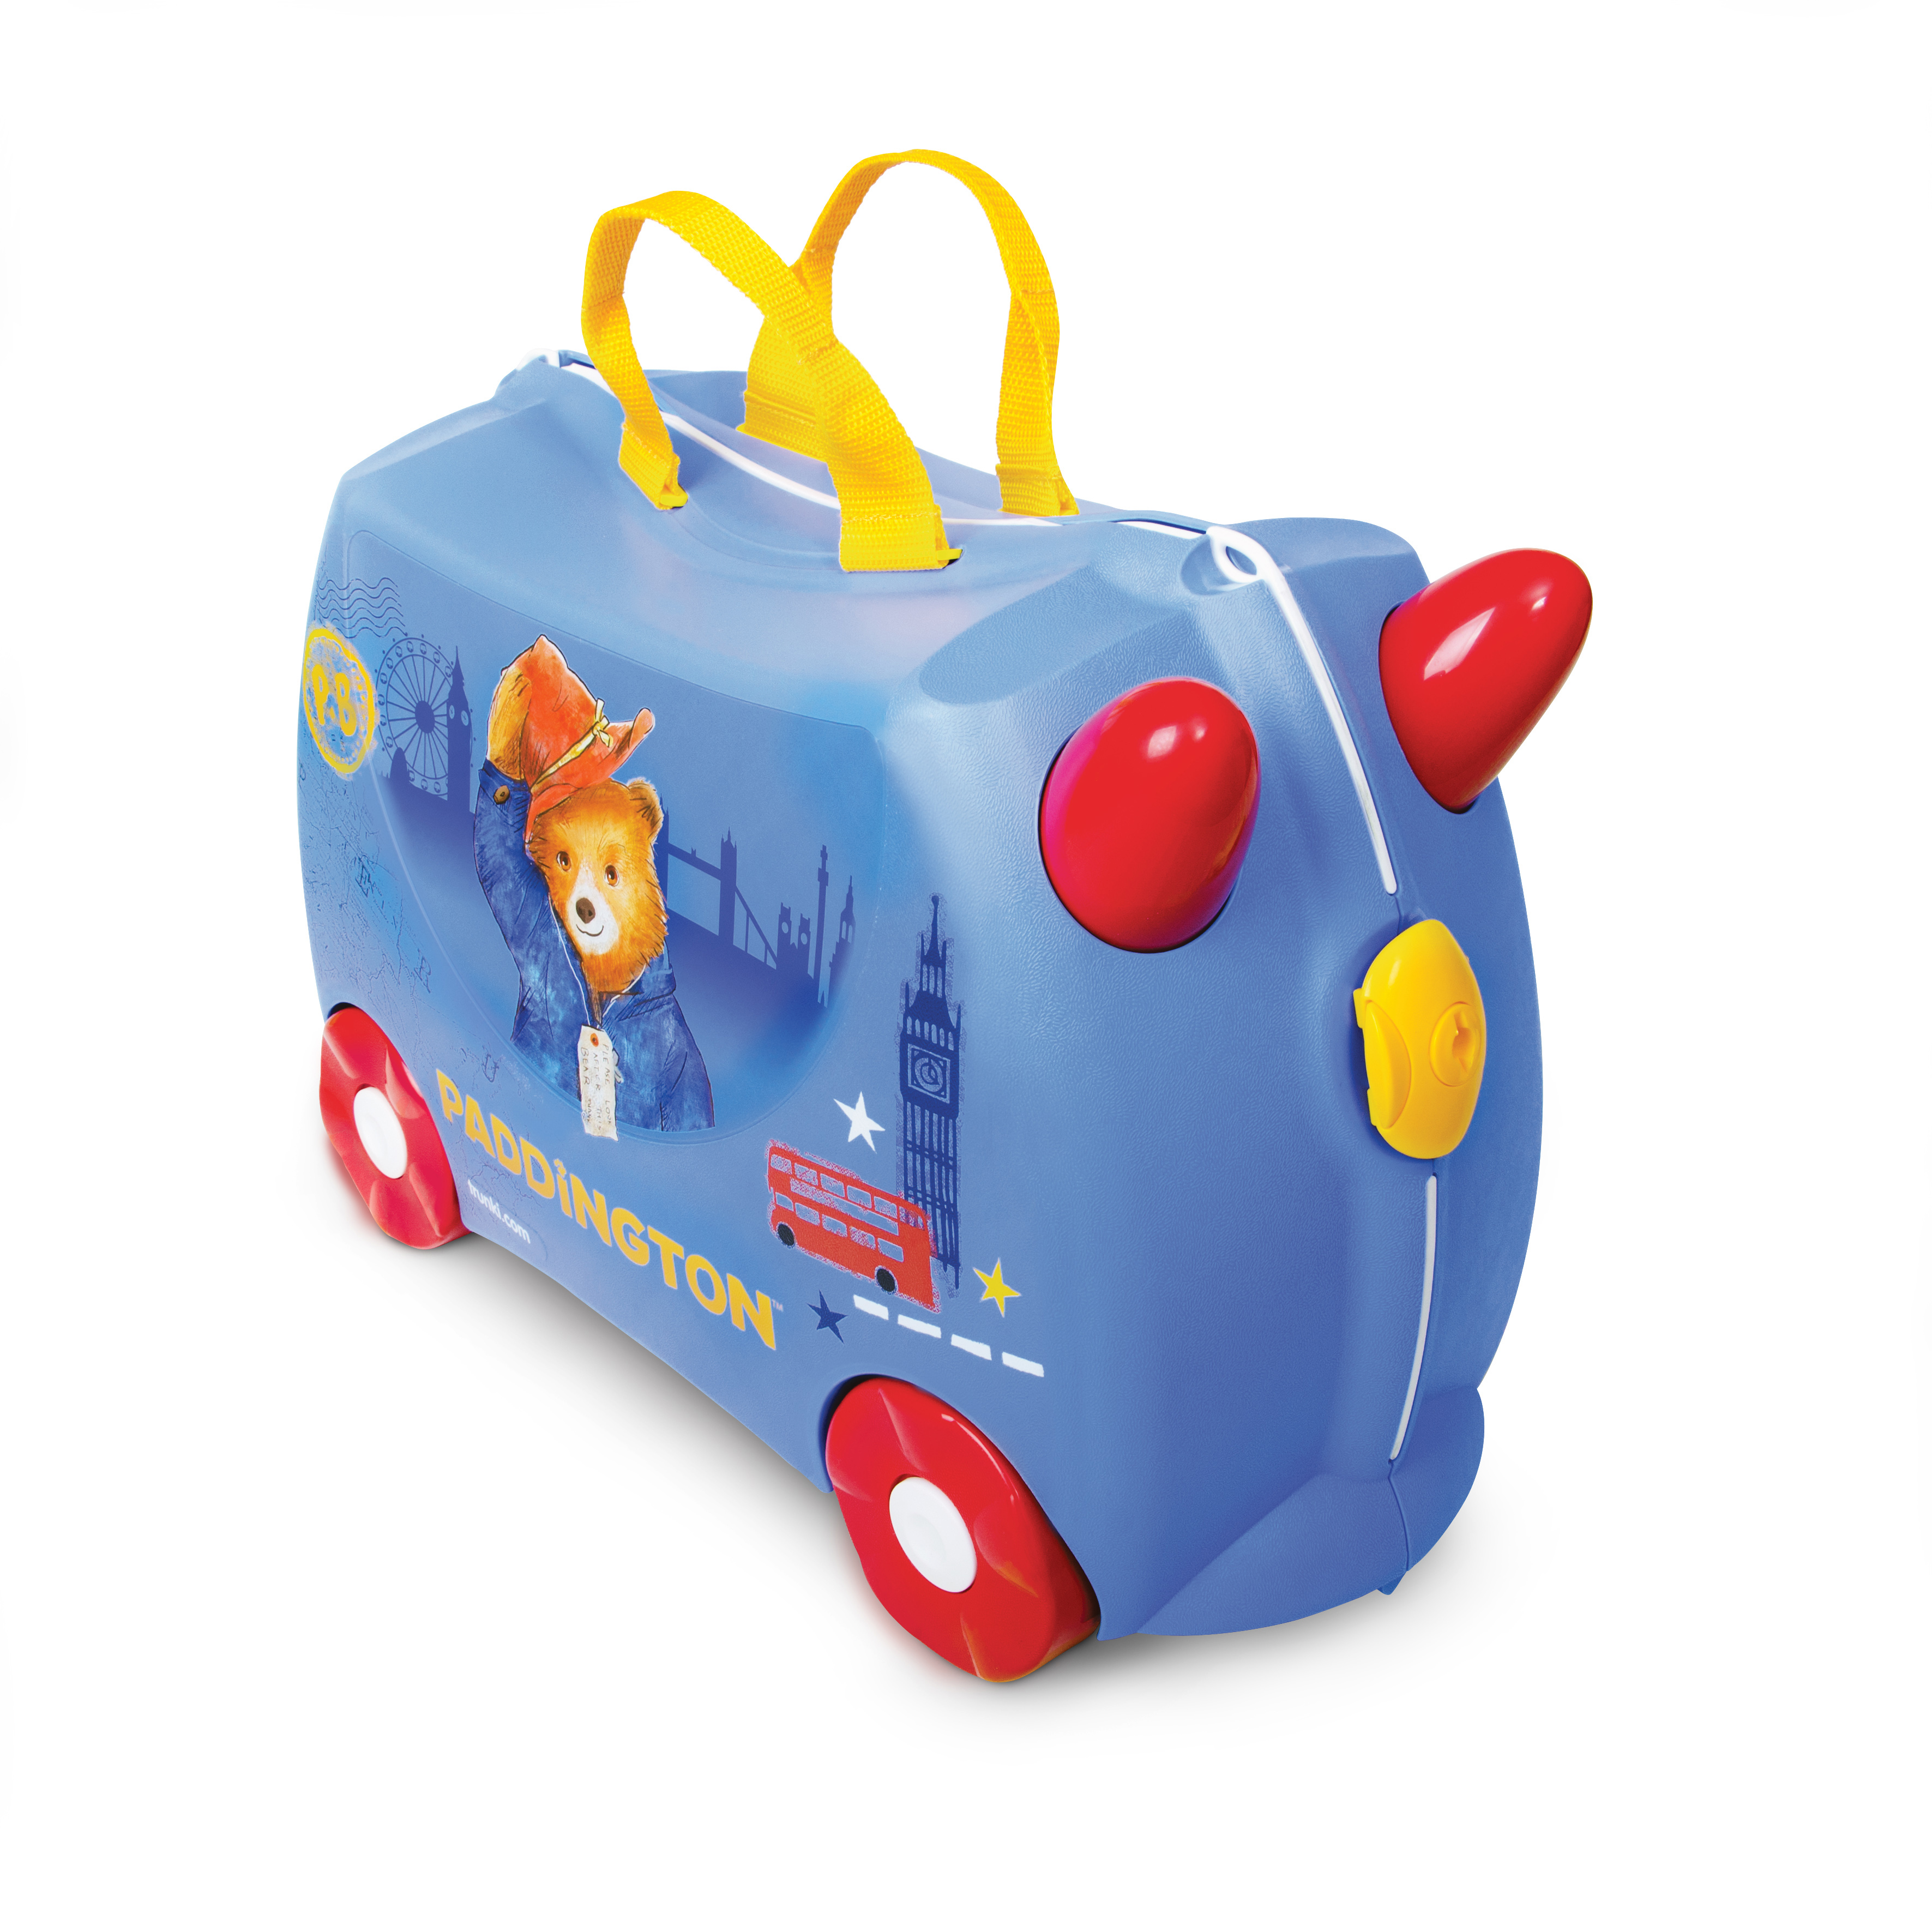 Trunki Paddington Resväska - Blå